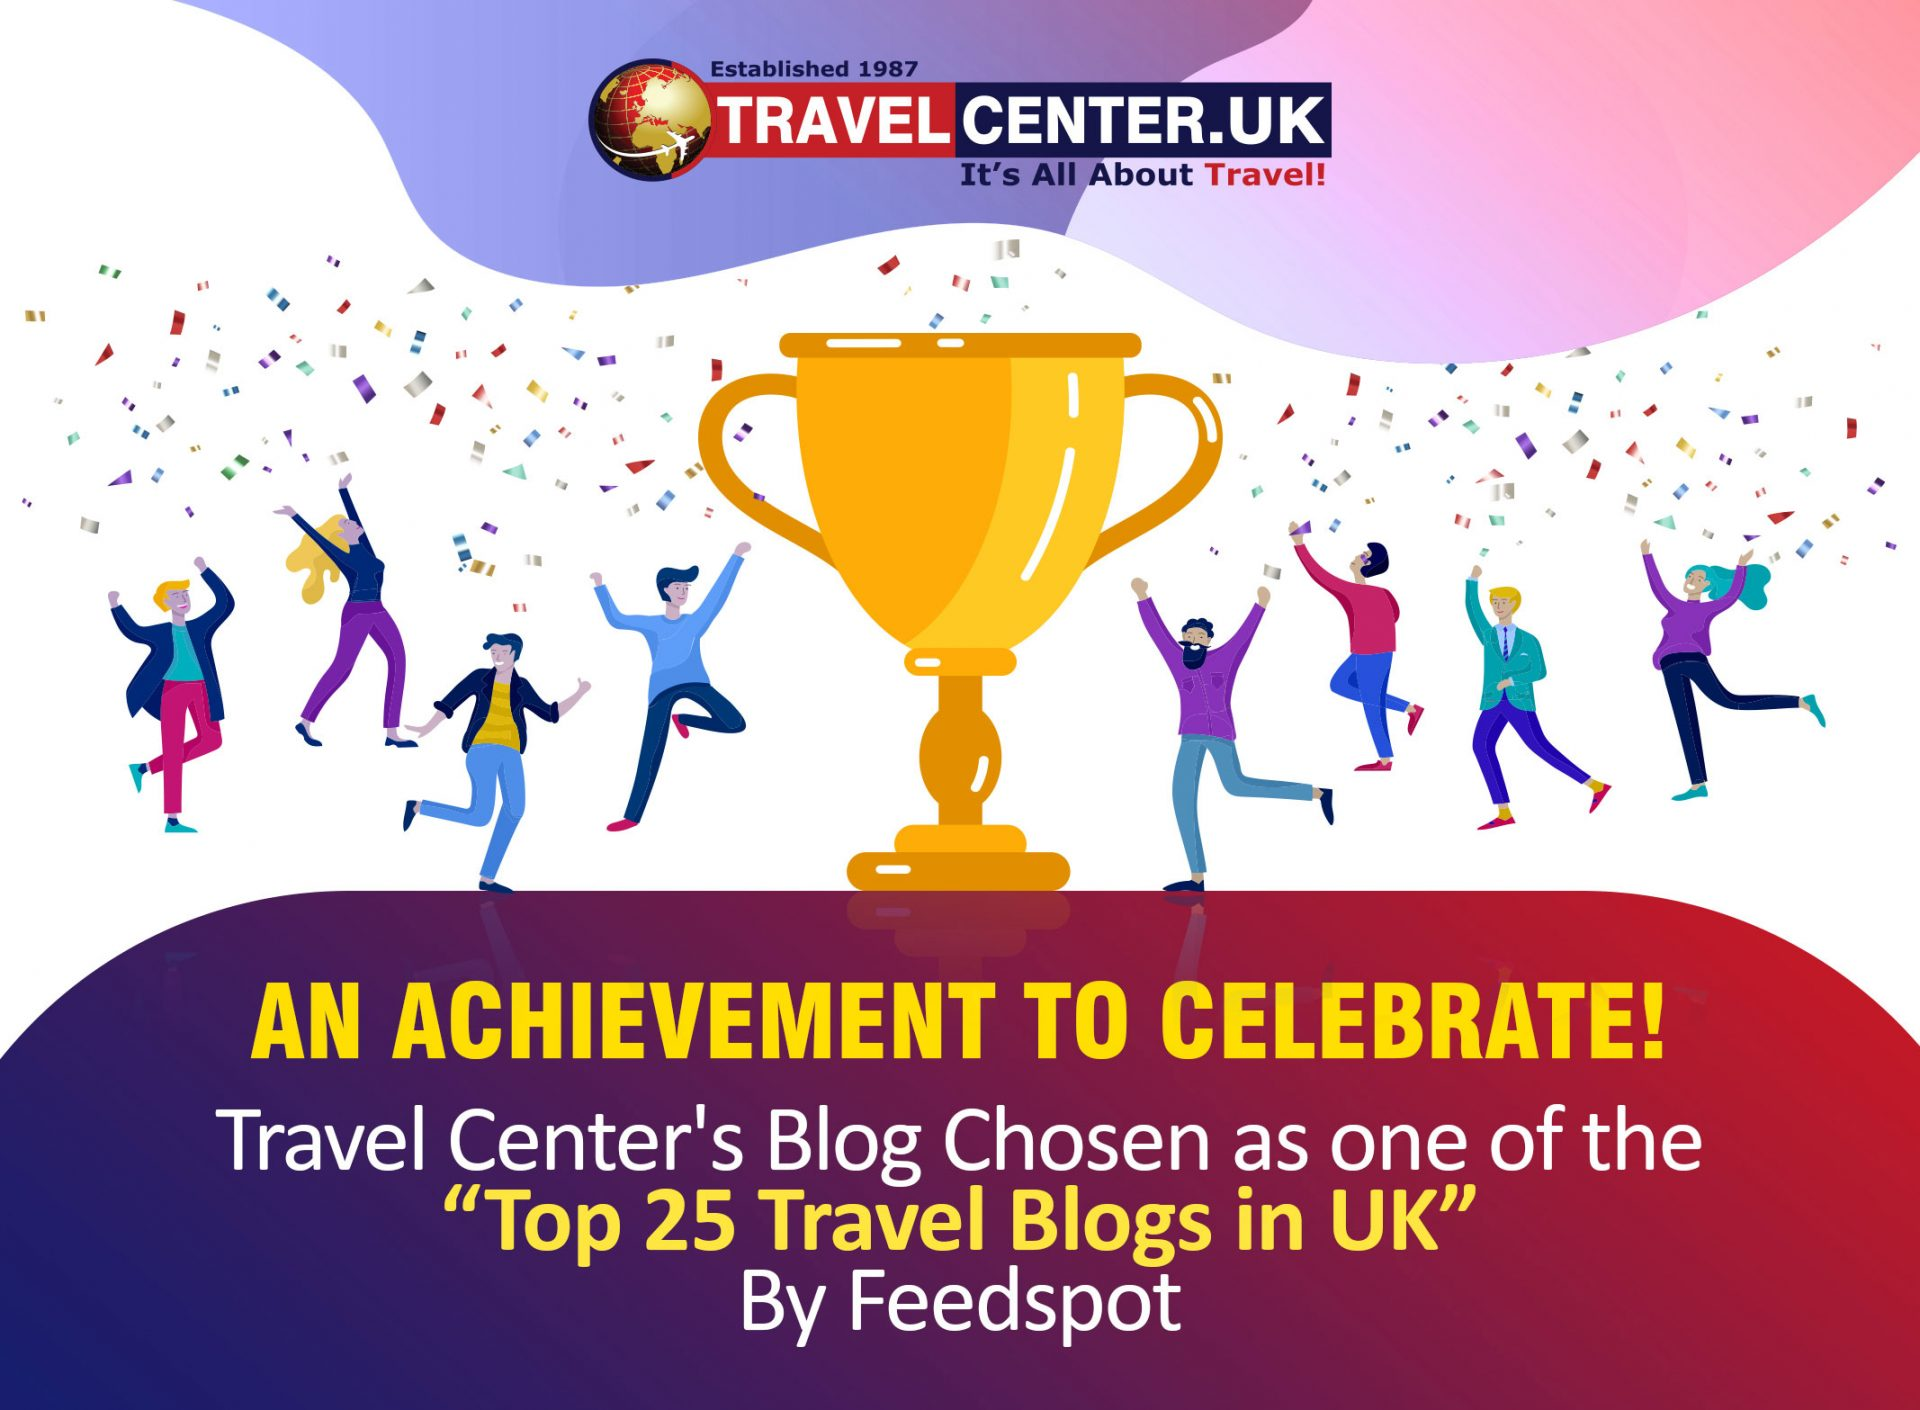 An Achievement to Celebrate! Travel Center's Blog Chosen as one of the Top 25 Travel Blogs in the UK - Travel Center UK